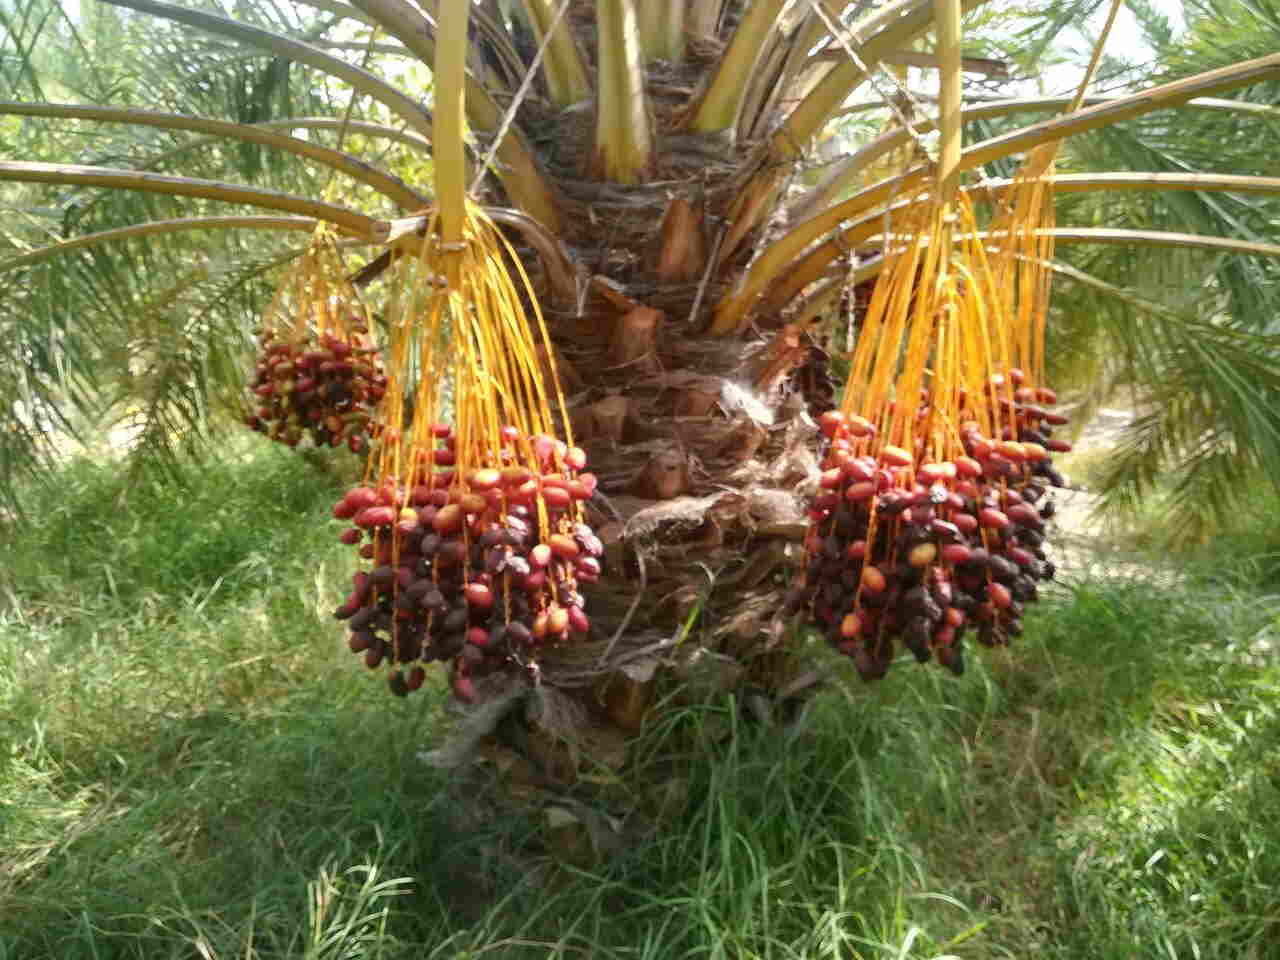 210,000 tons of dates were harvested in Sistan and Baluchestan